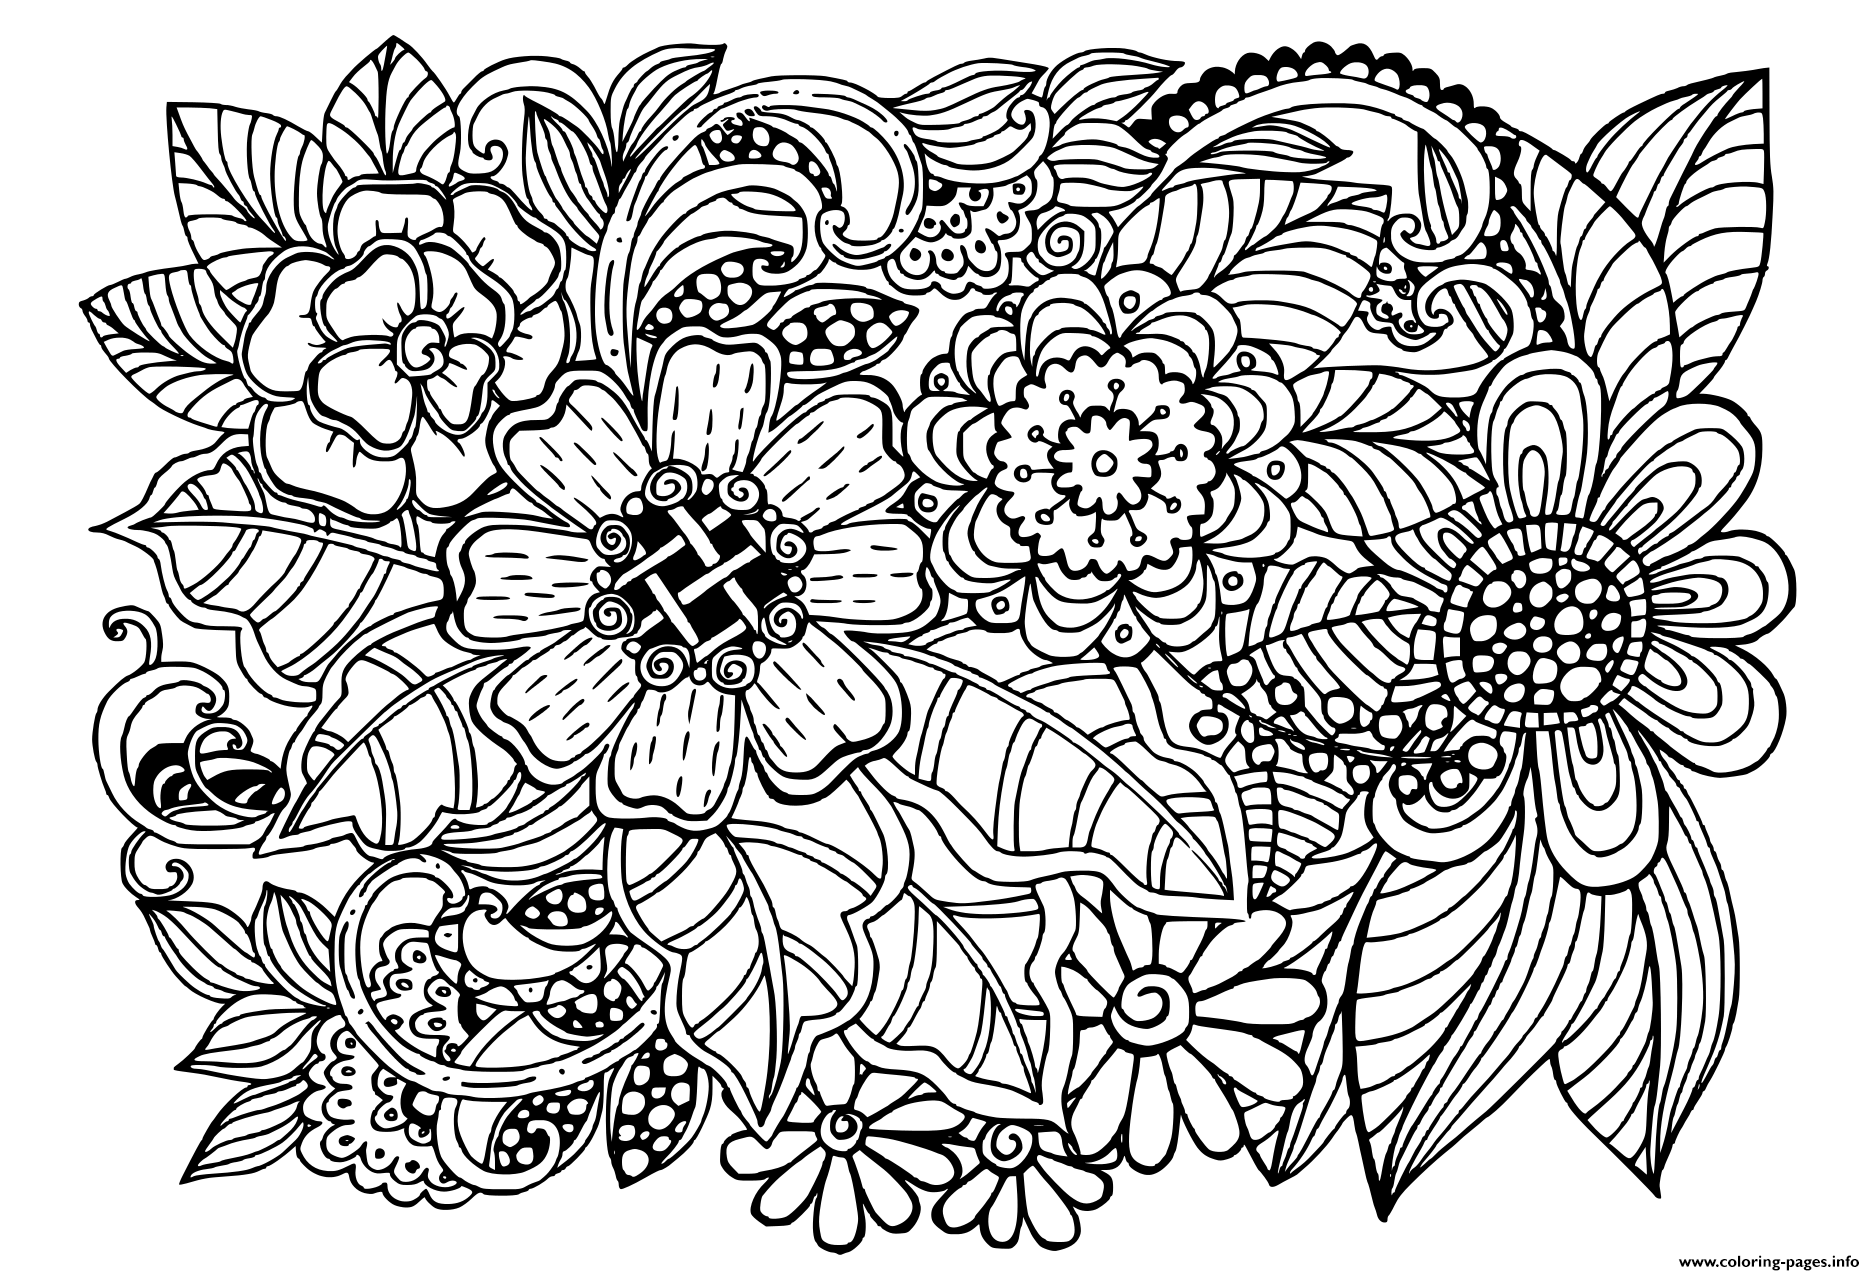 coloring pages for adults patterns free printable geometric coloring pages for adults pages for coloring patterns adults